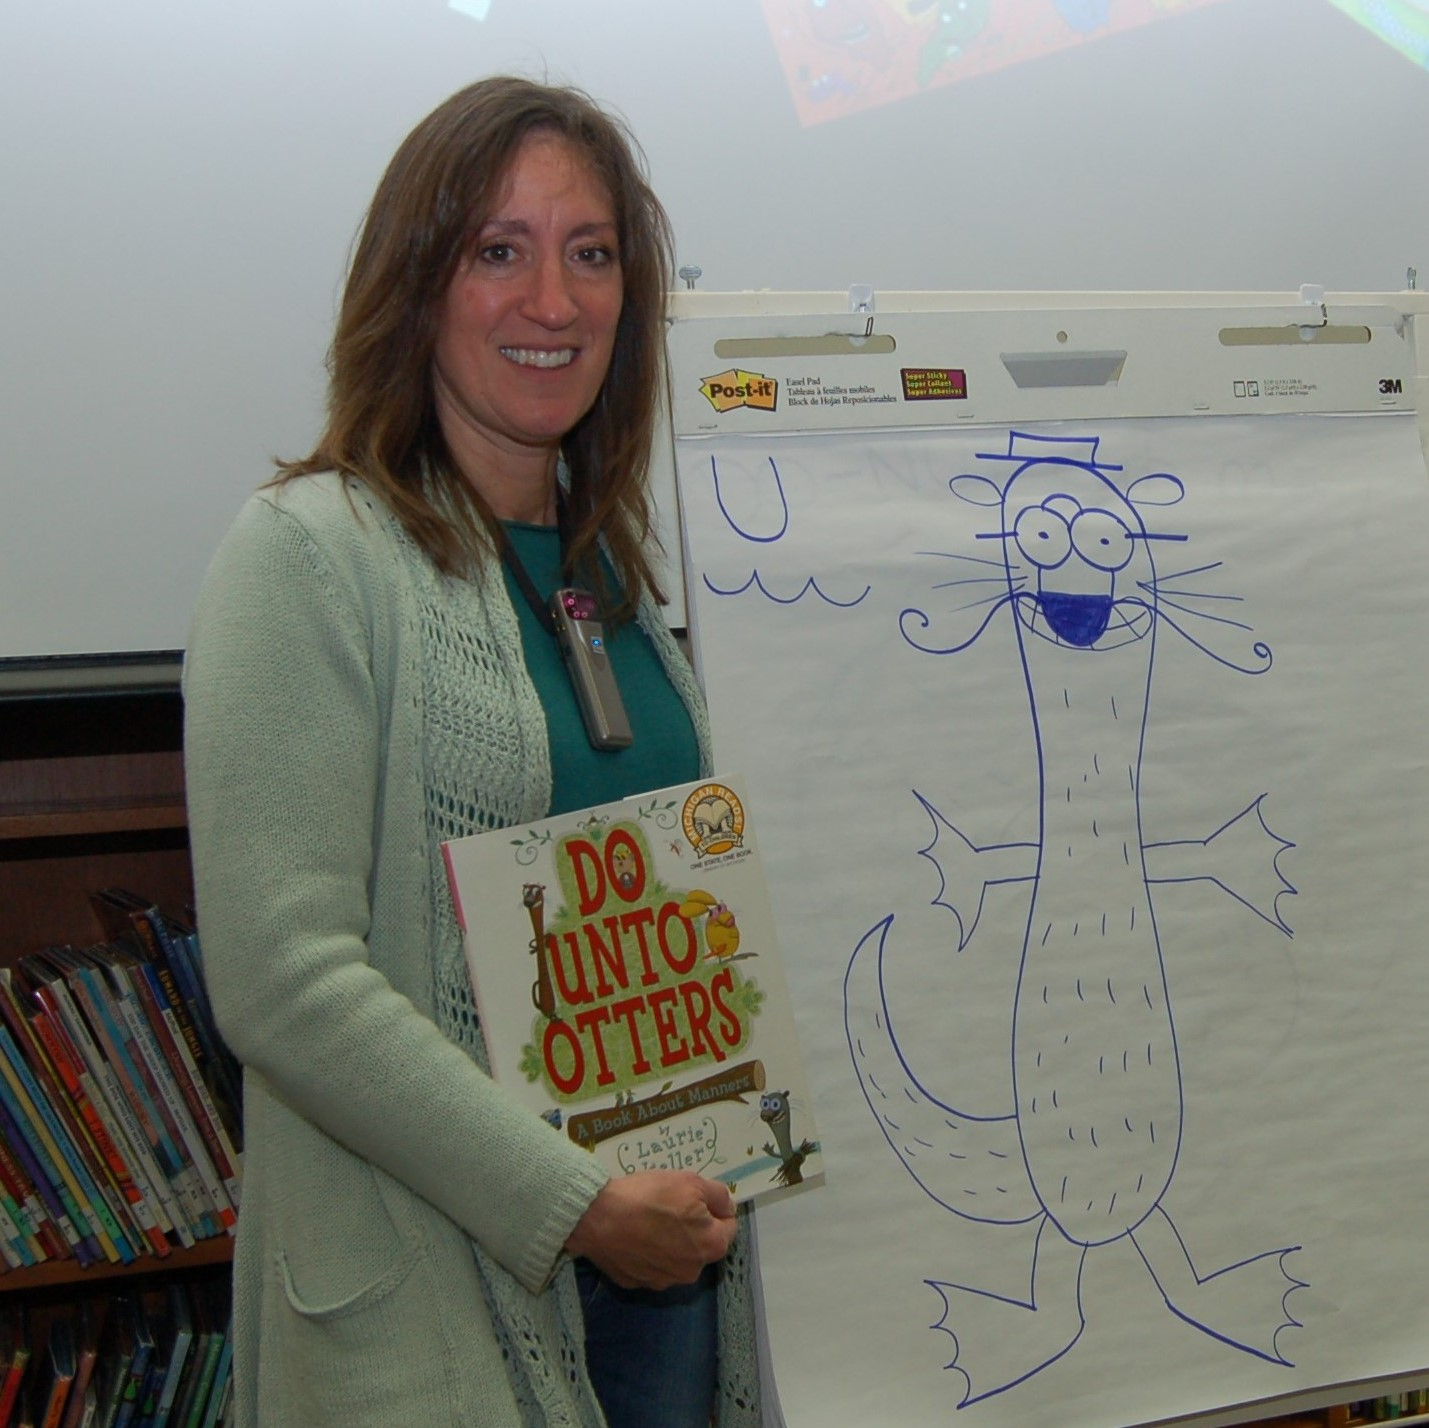 Author Laurie Keller with her artwork